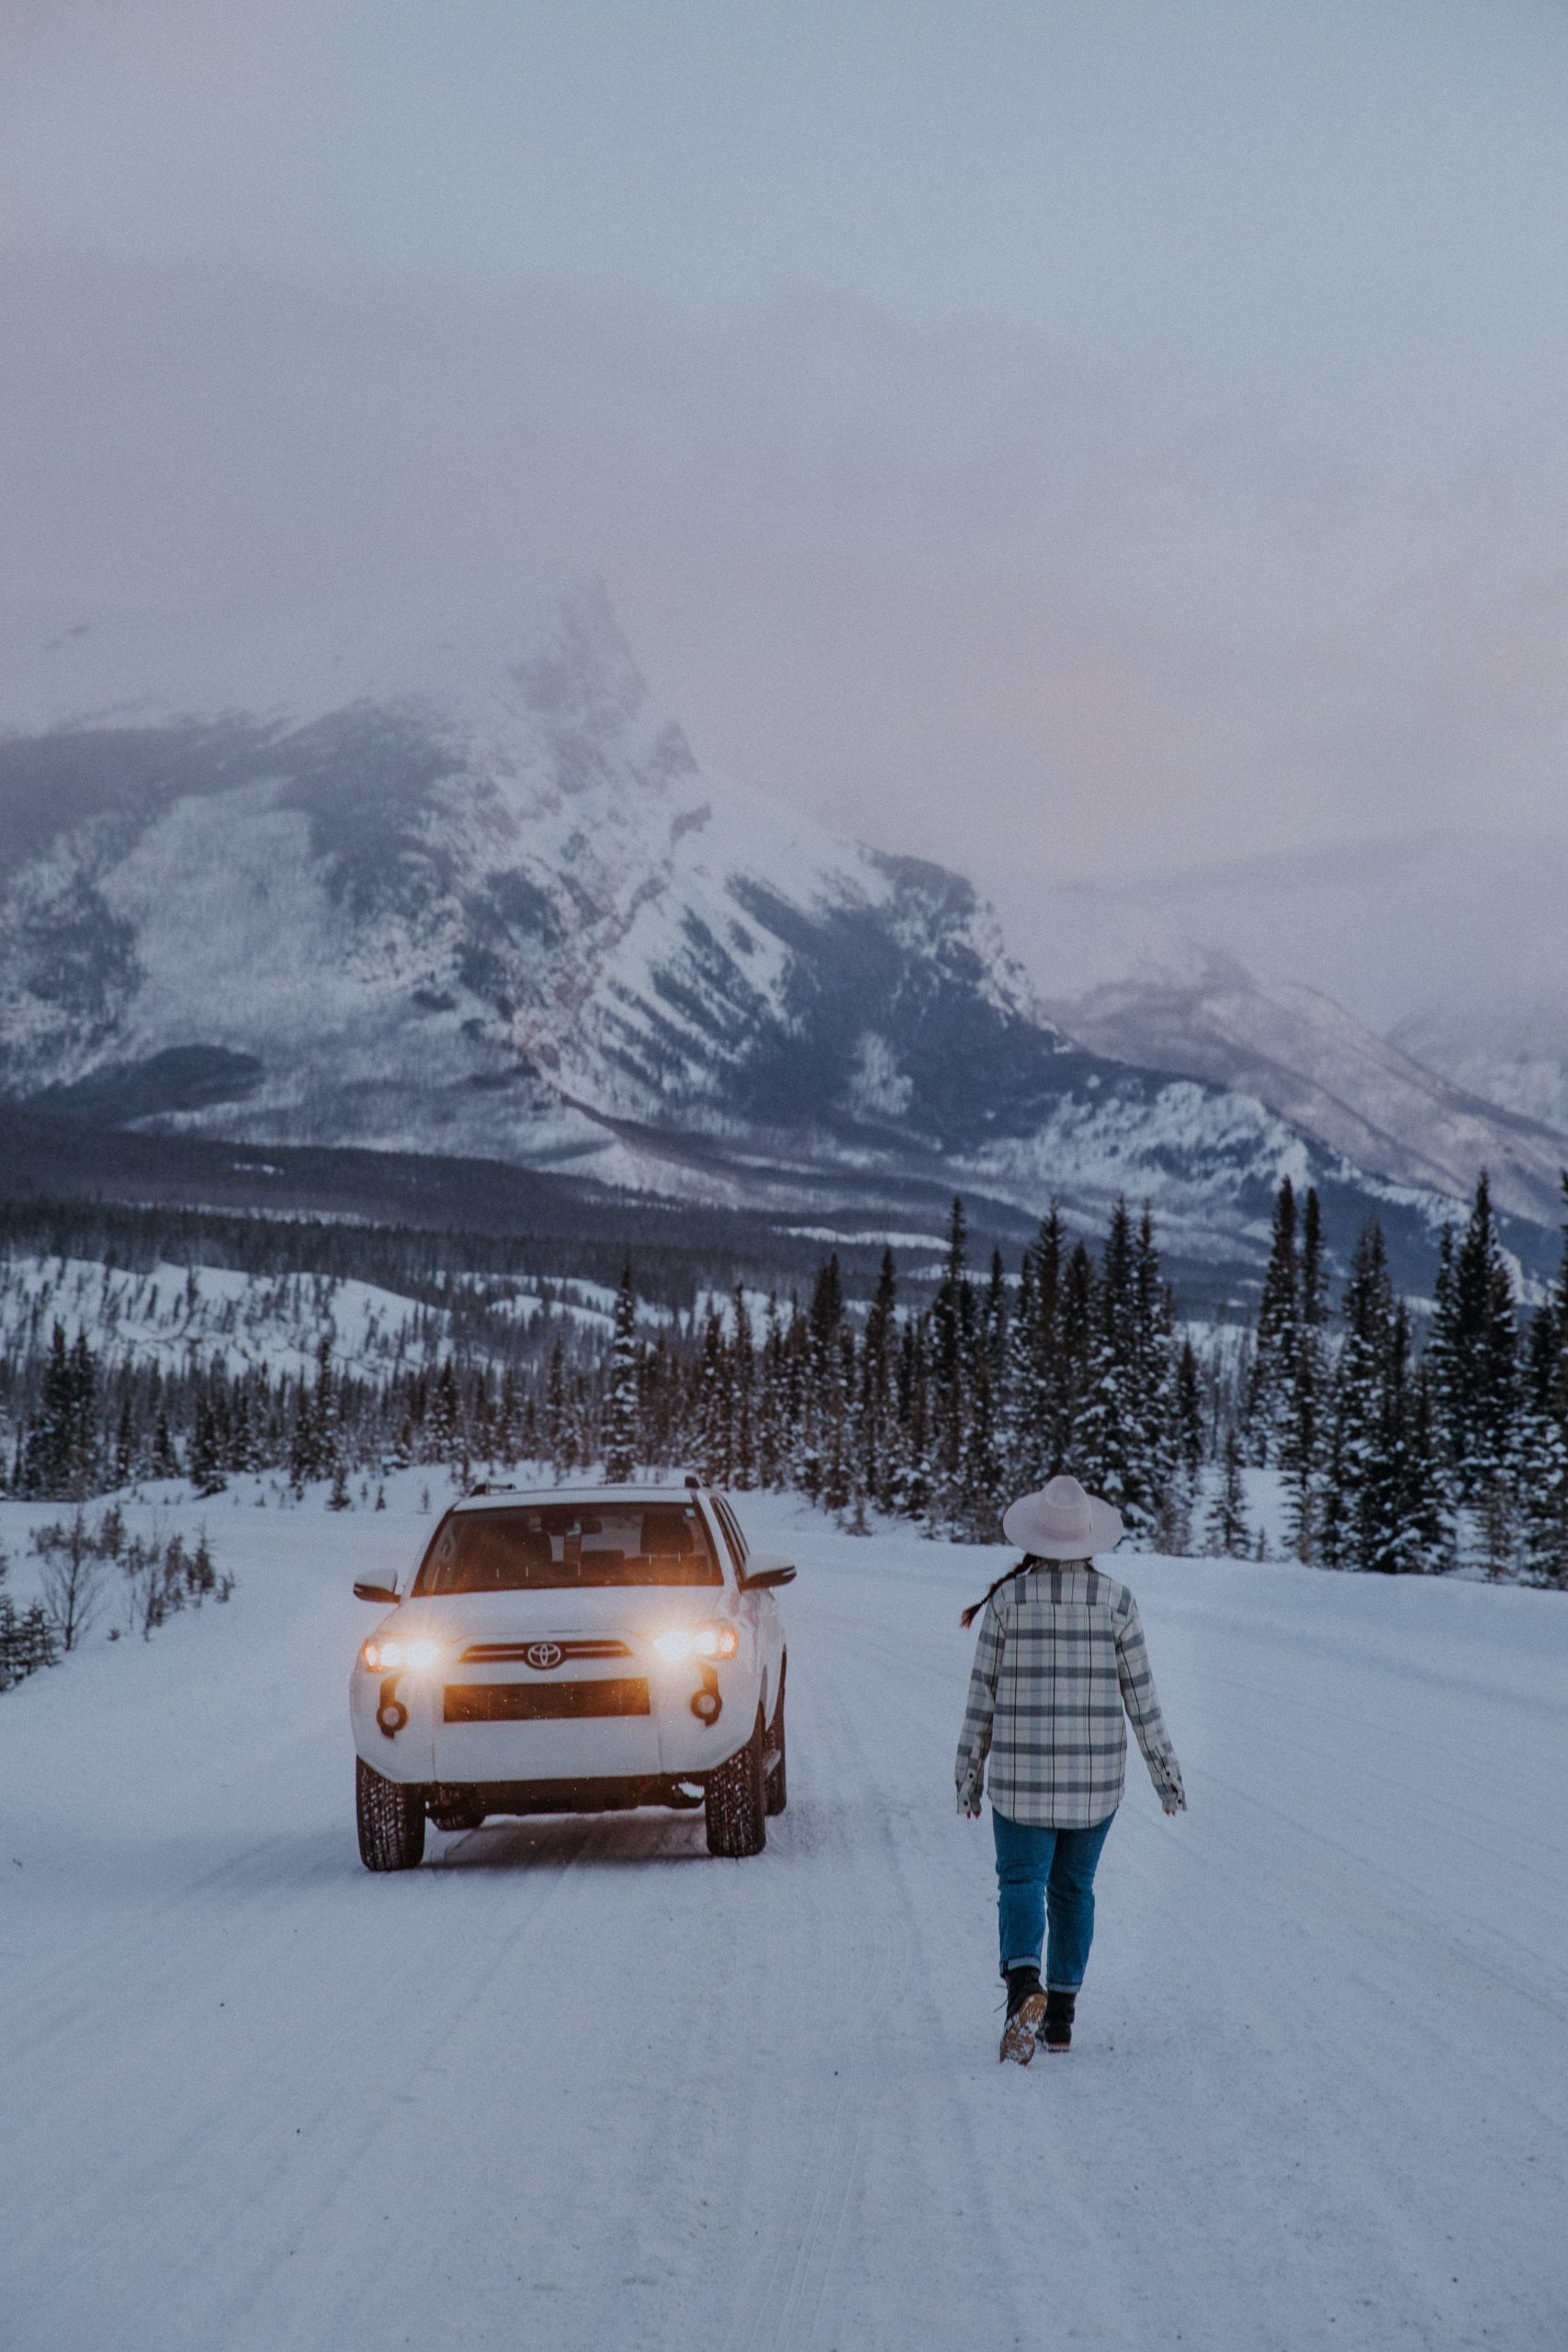 The Ultimate Banff Winter Guide - Driving the Icefields Parkway